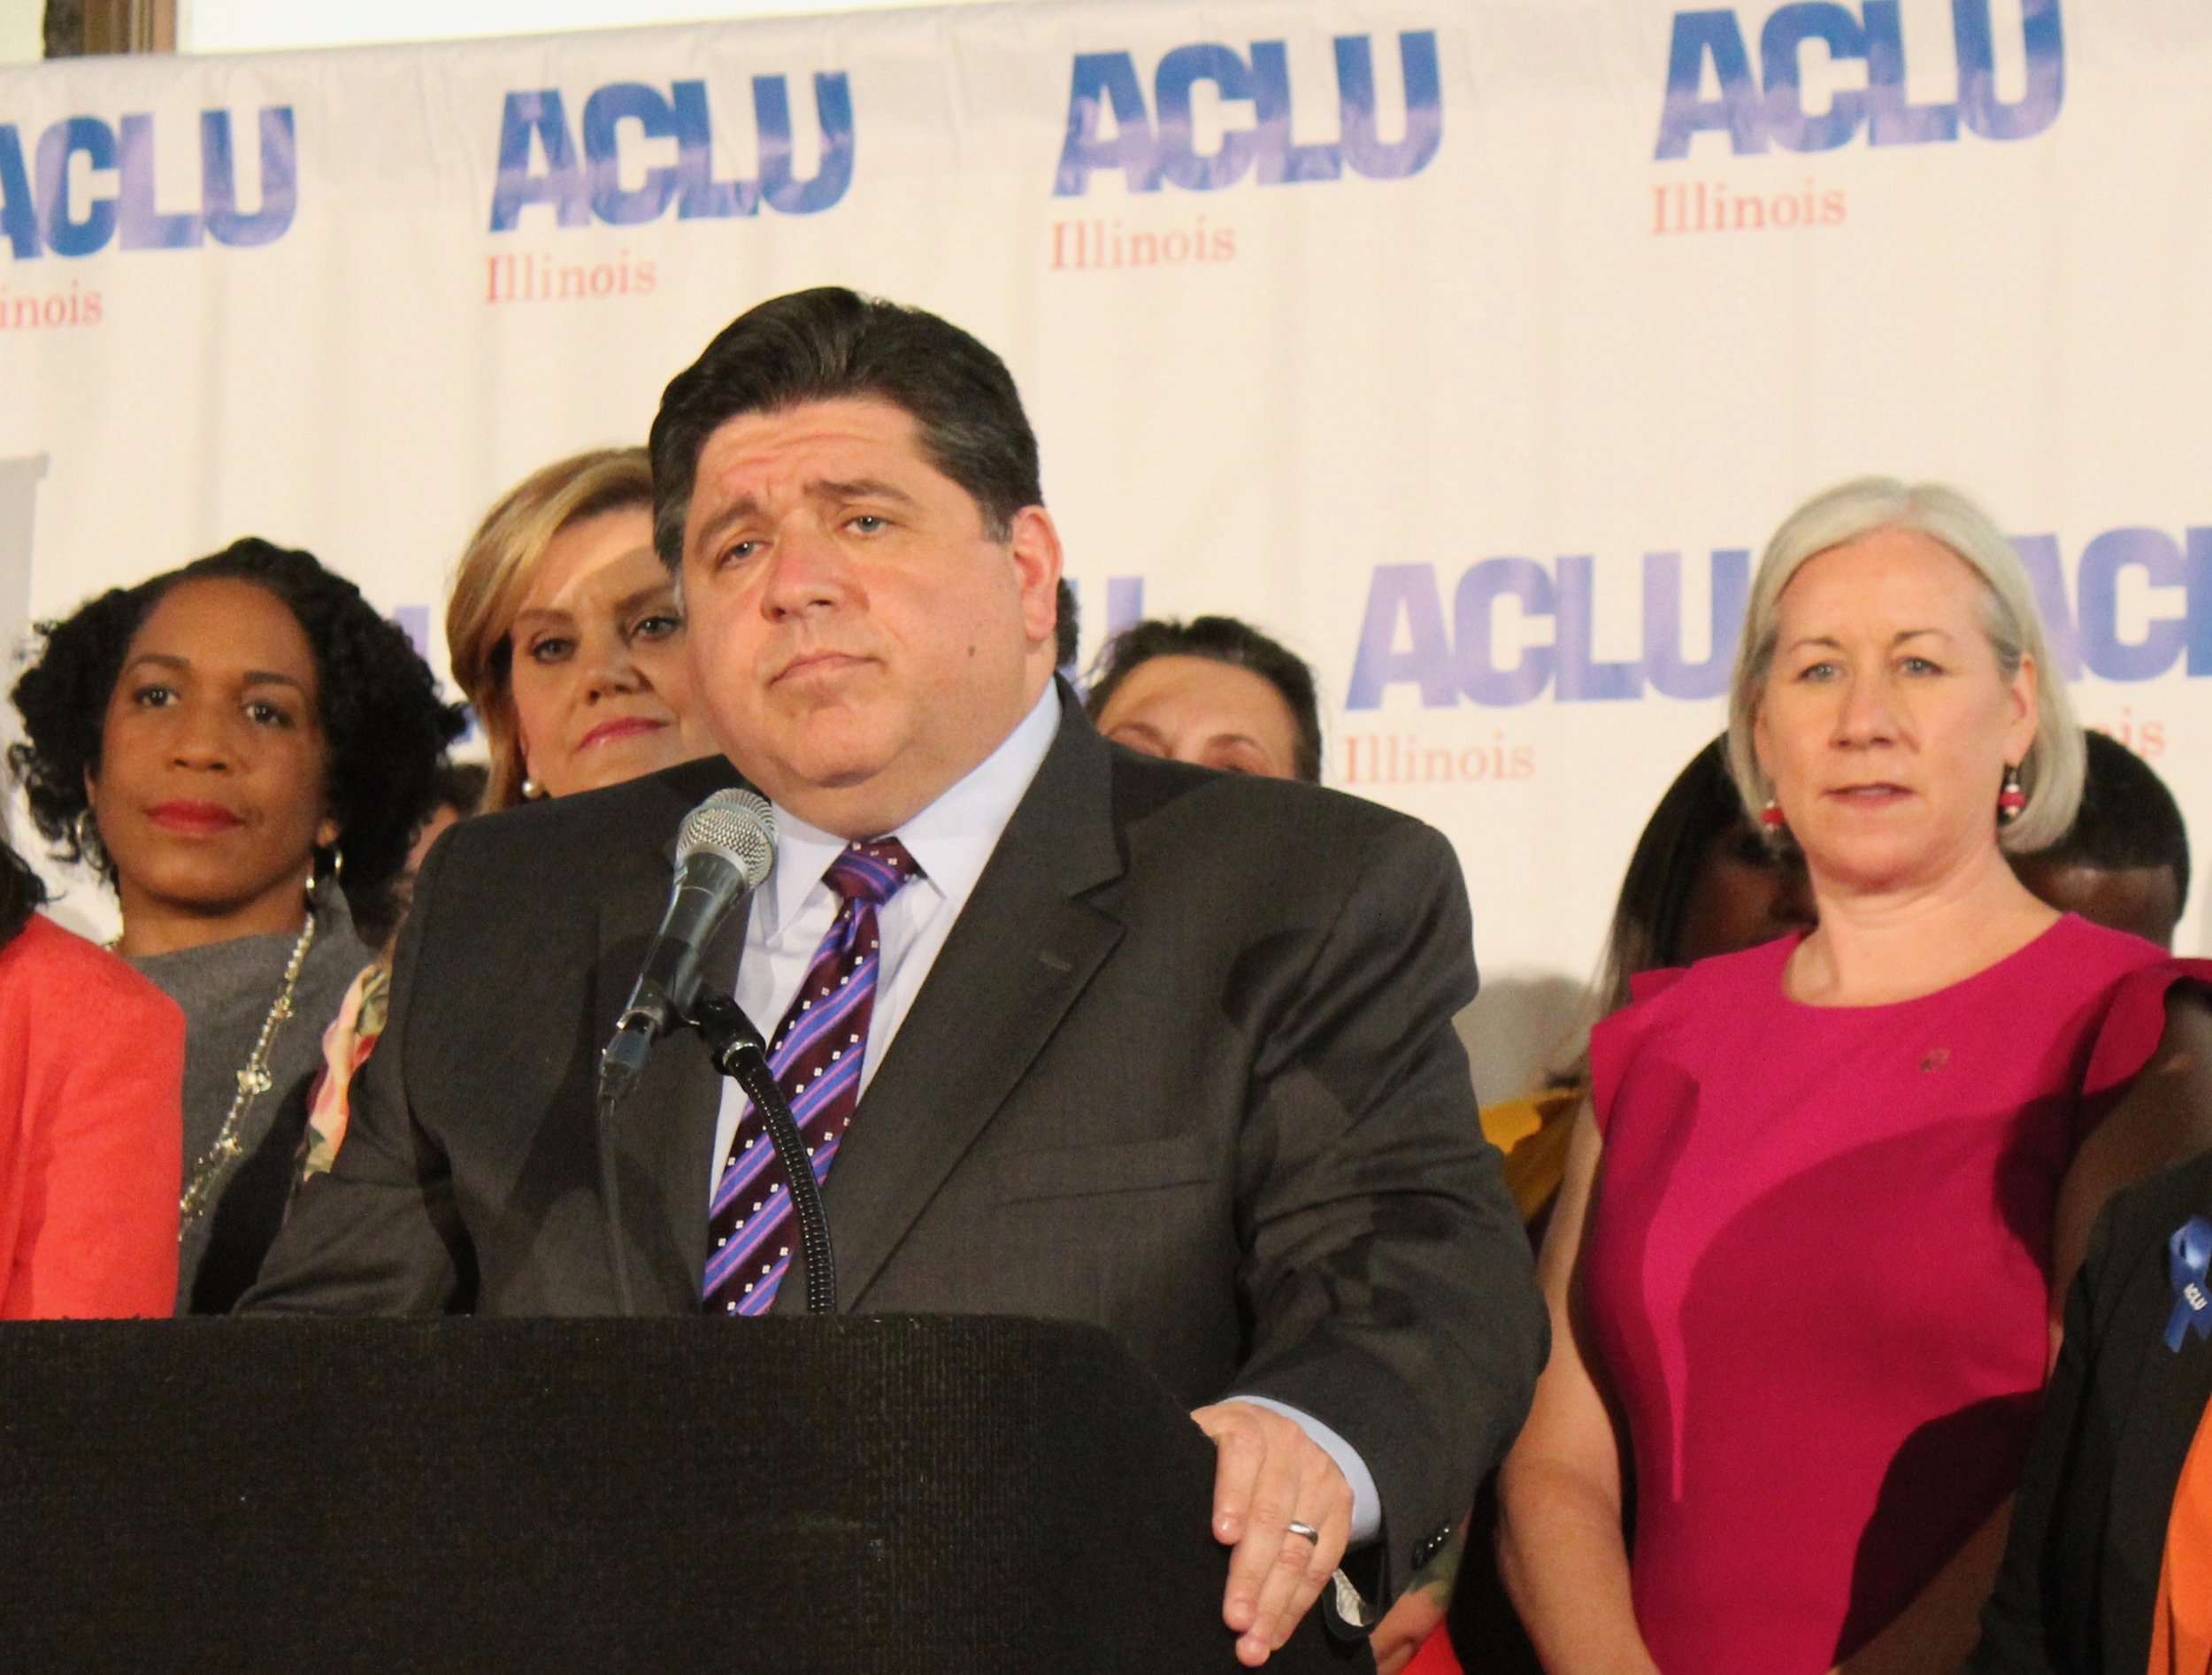 Gov. Pritzker and Planned Parenthood of Illinois President Jennifer Welch (right) speak at a bill-signing ceremony for the Reproductive Health Act earlier this year. (One Illinois/Ted Cox)